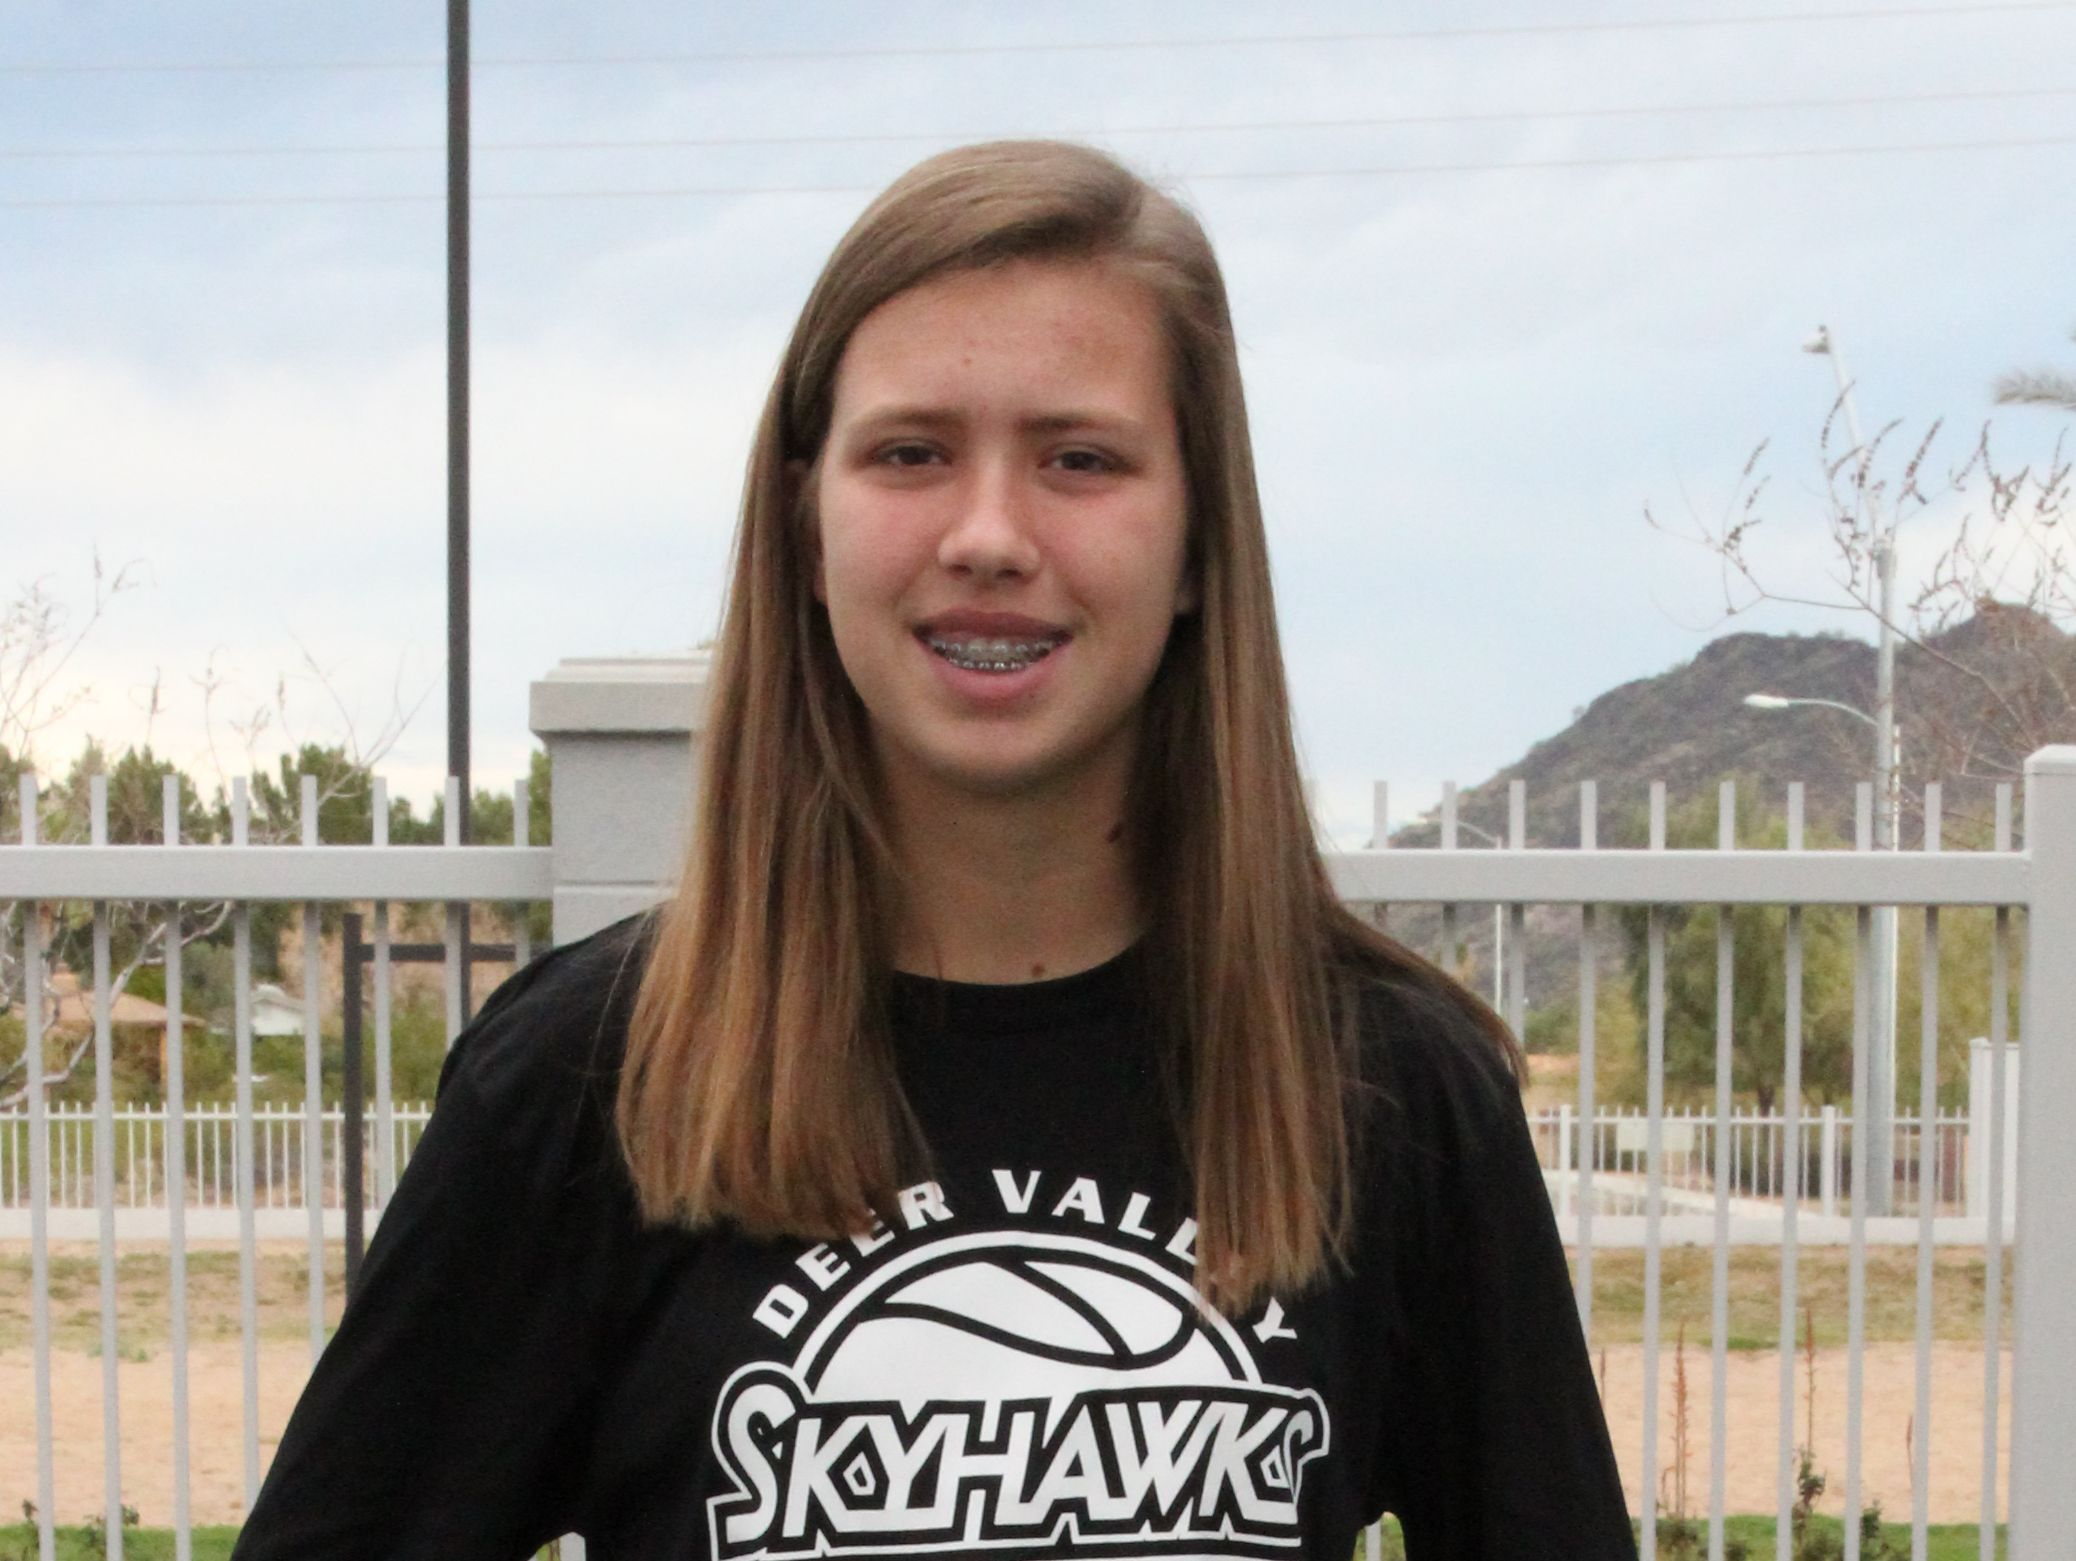 Jessica Roskelley, from Glendale Deer Valley, is azcentral sports' High Achiever of the Week for Feb. 11-18.